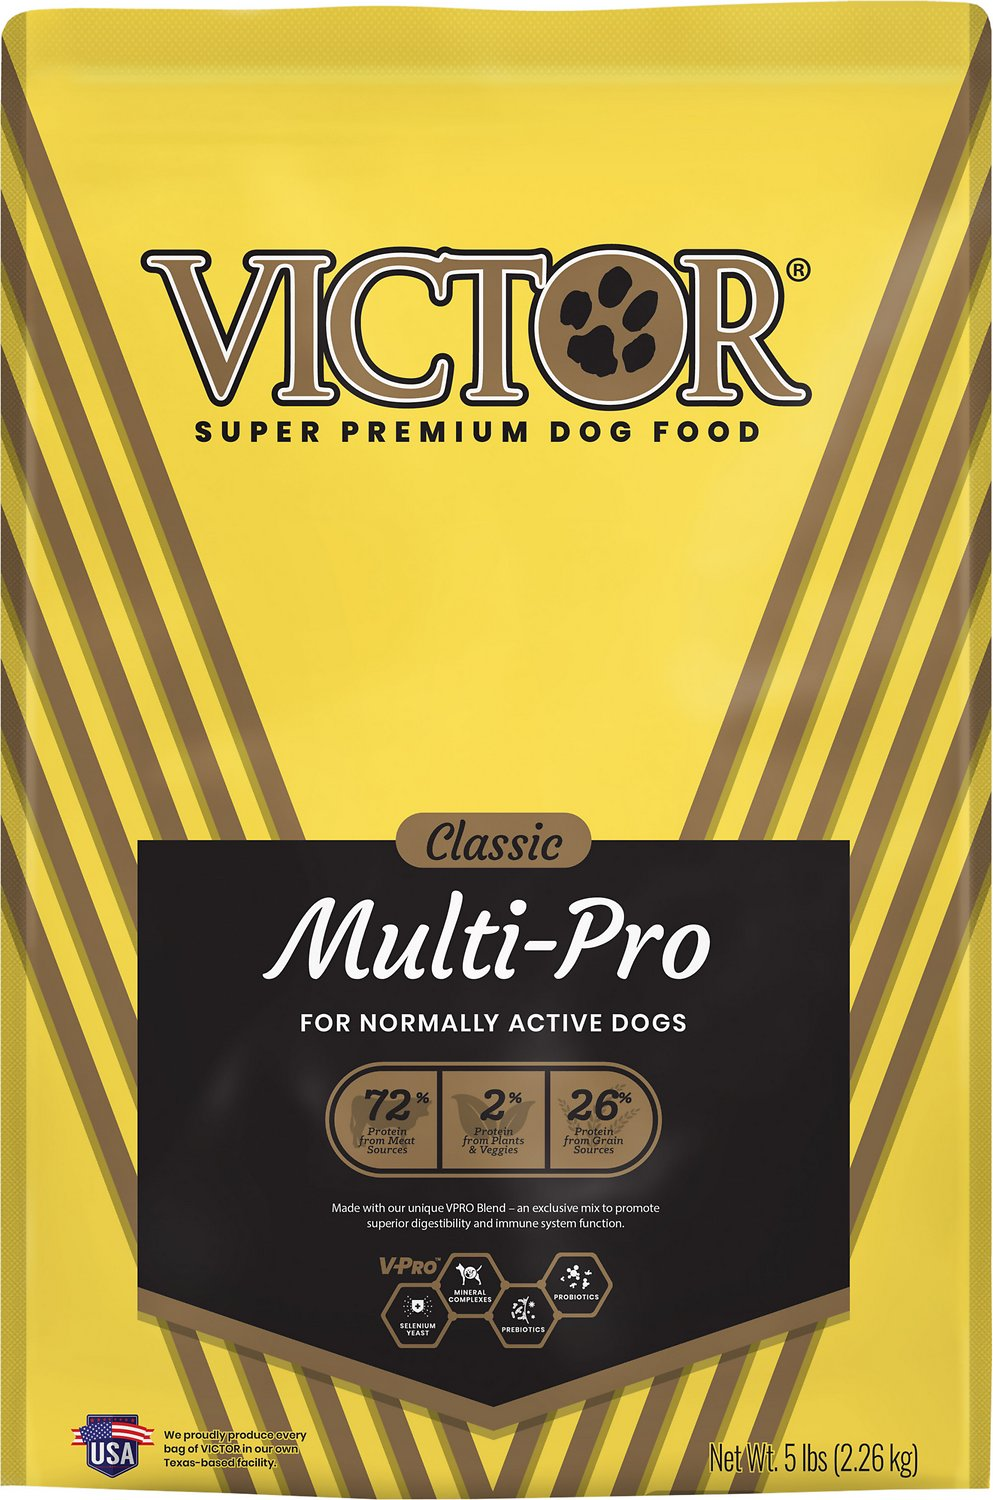 Victor Dog Food Reviews >> Victor Multi-Pro Dry Dog Food, 5-lb bag - Chewy.com